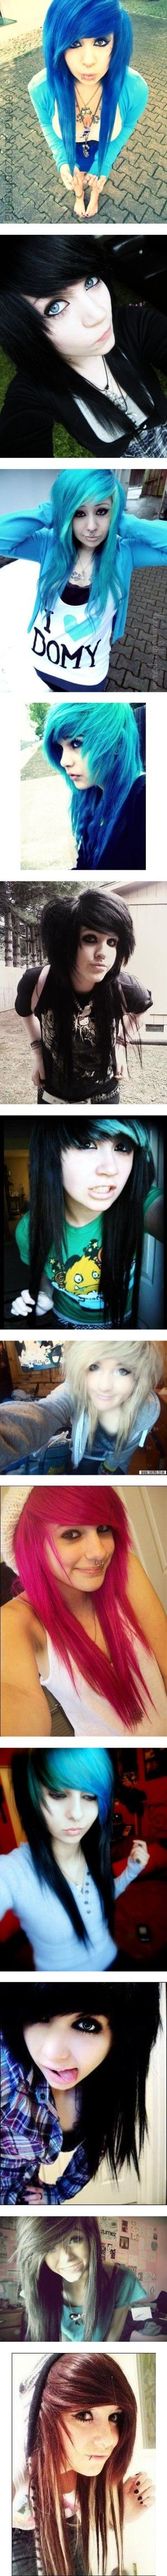 """Amazing hair! ! ♥♥♥"" by arsenic-catnip ❤ liked on Polyvore"